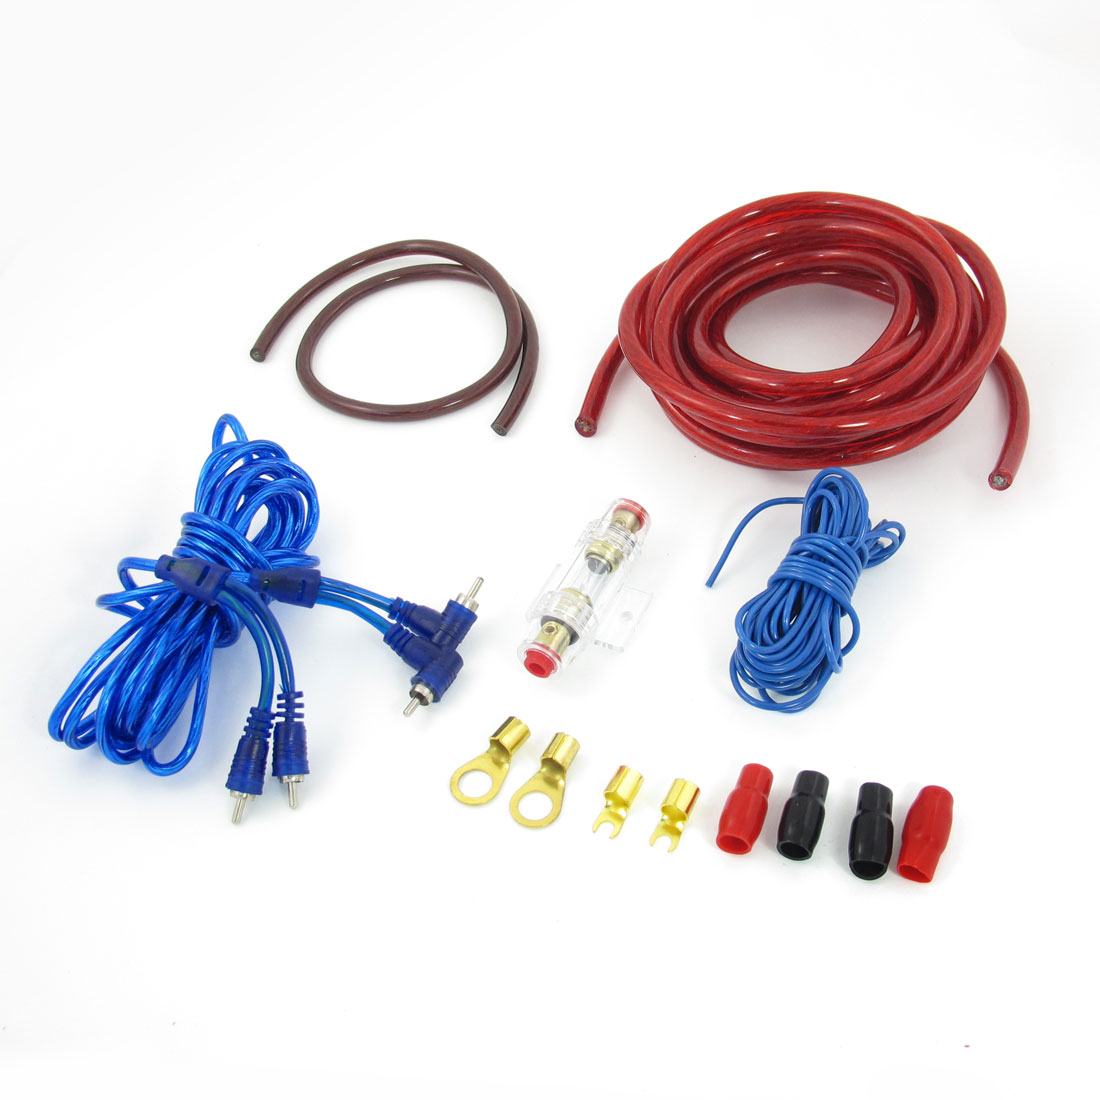 hight resolution of auto car 2000w rca to rca audio cable amplifier speaker wiring kit image 1 of zoomed image